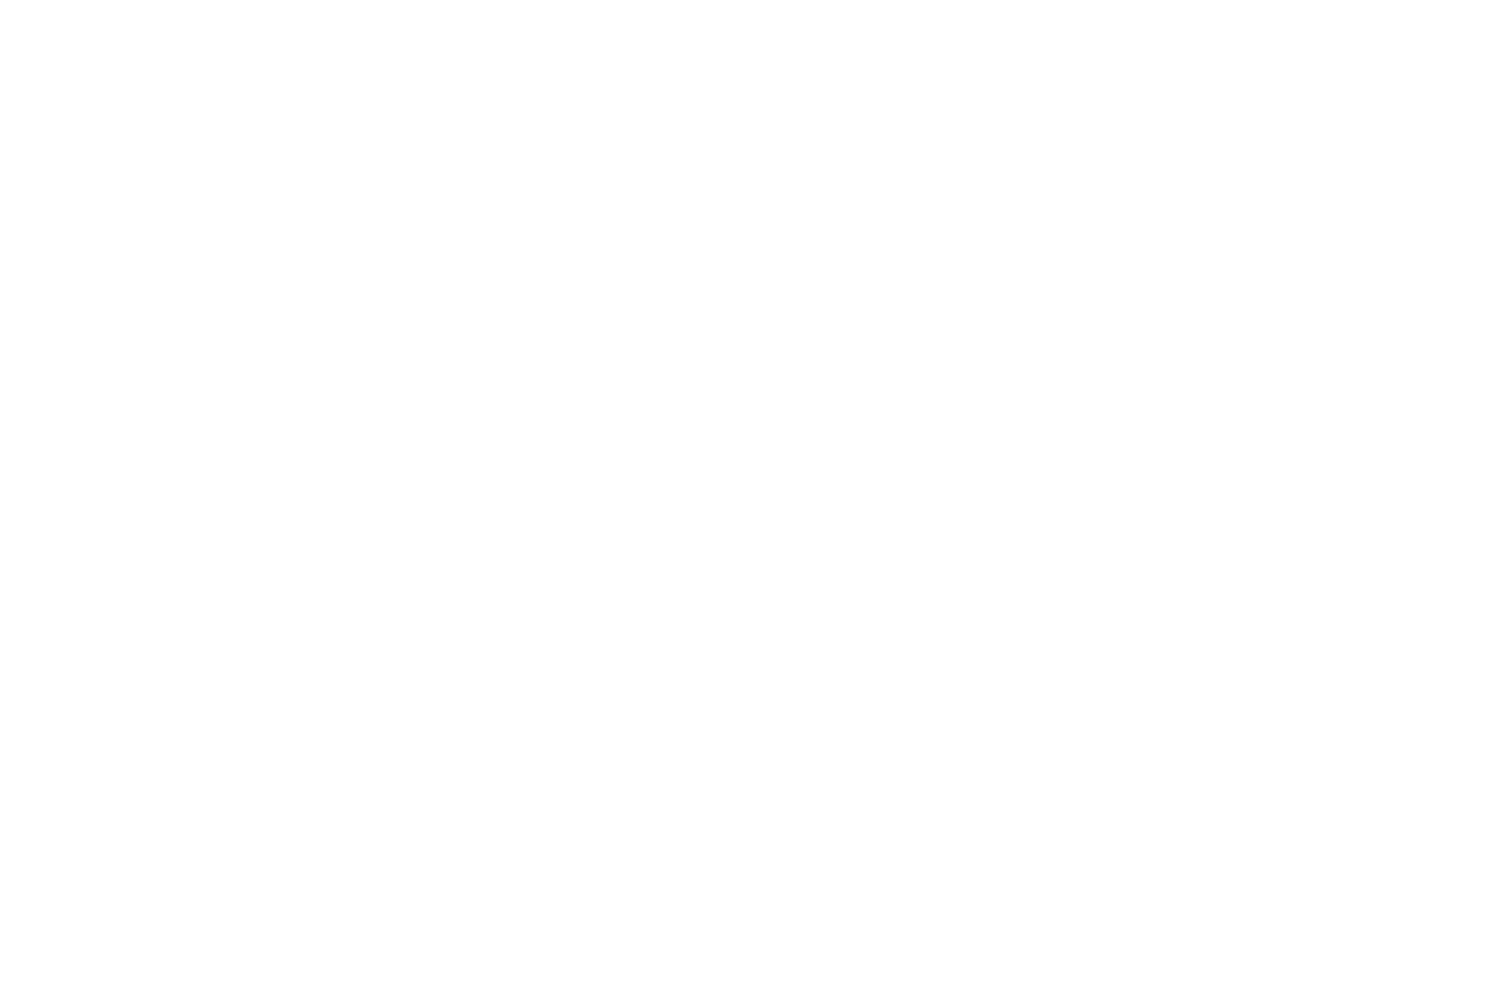 Johnny Z's Pizza